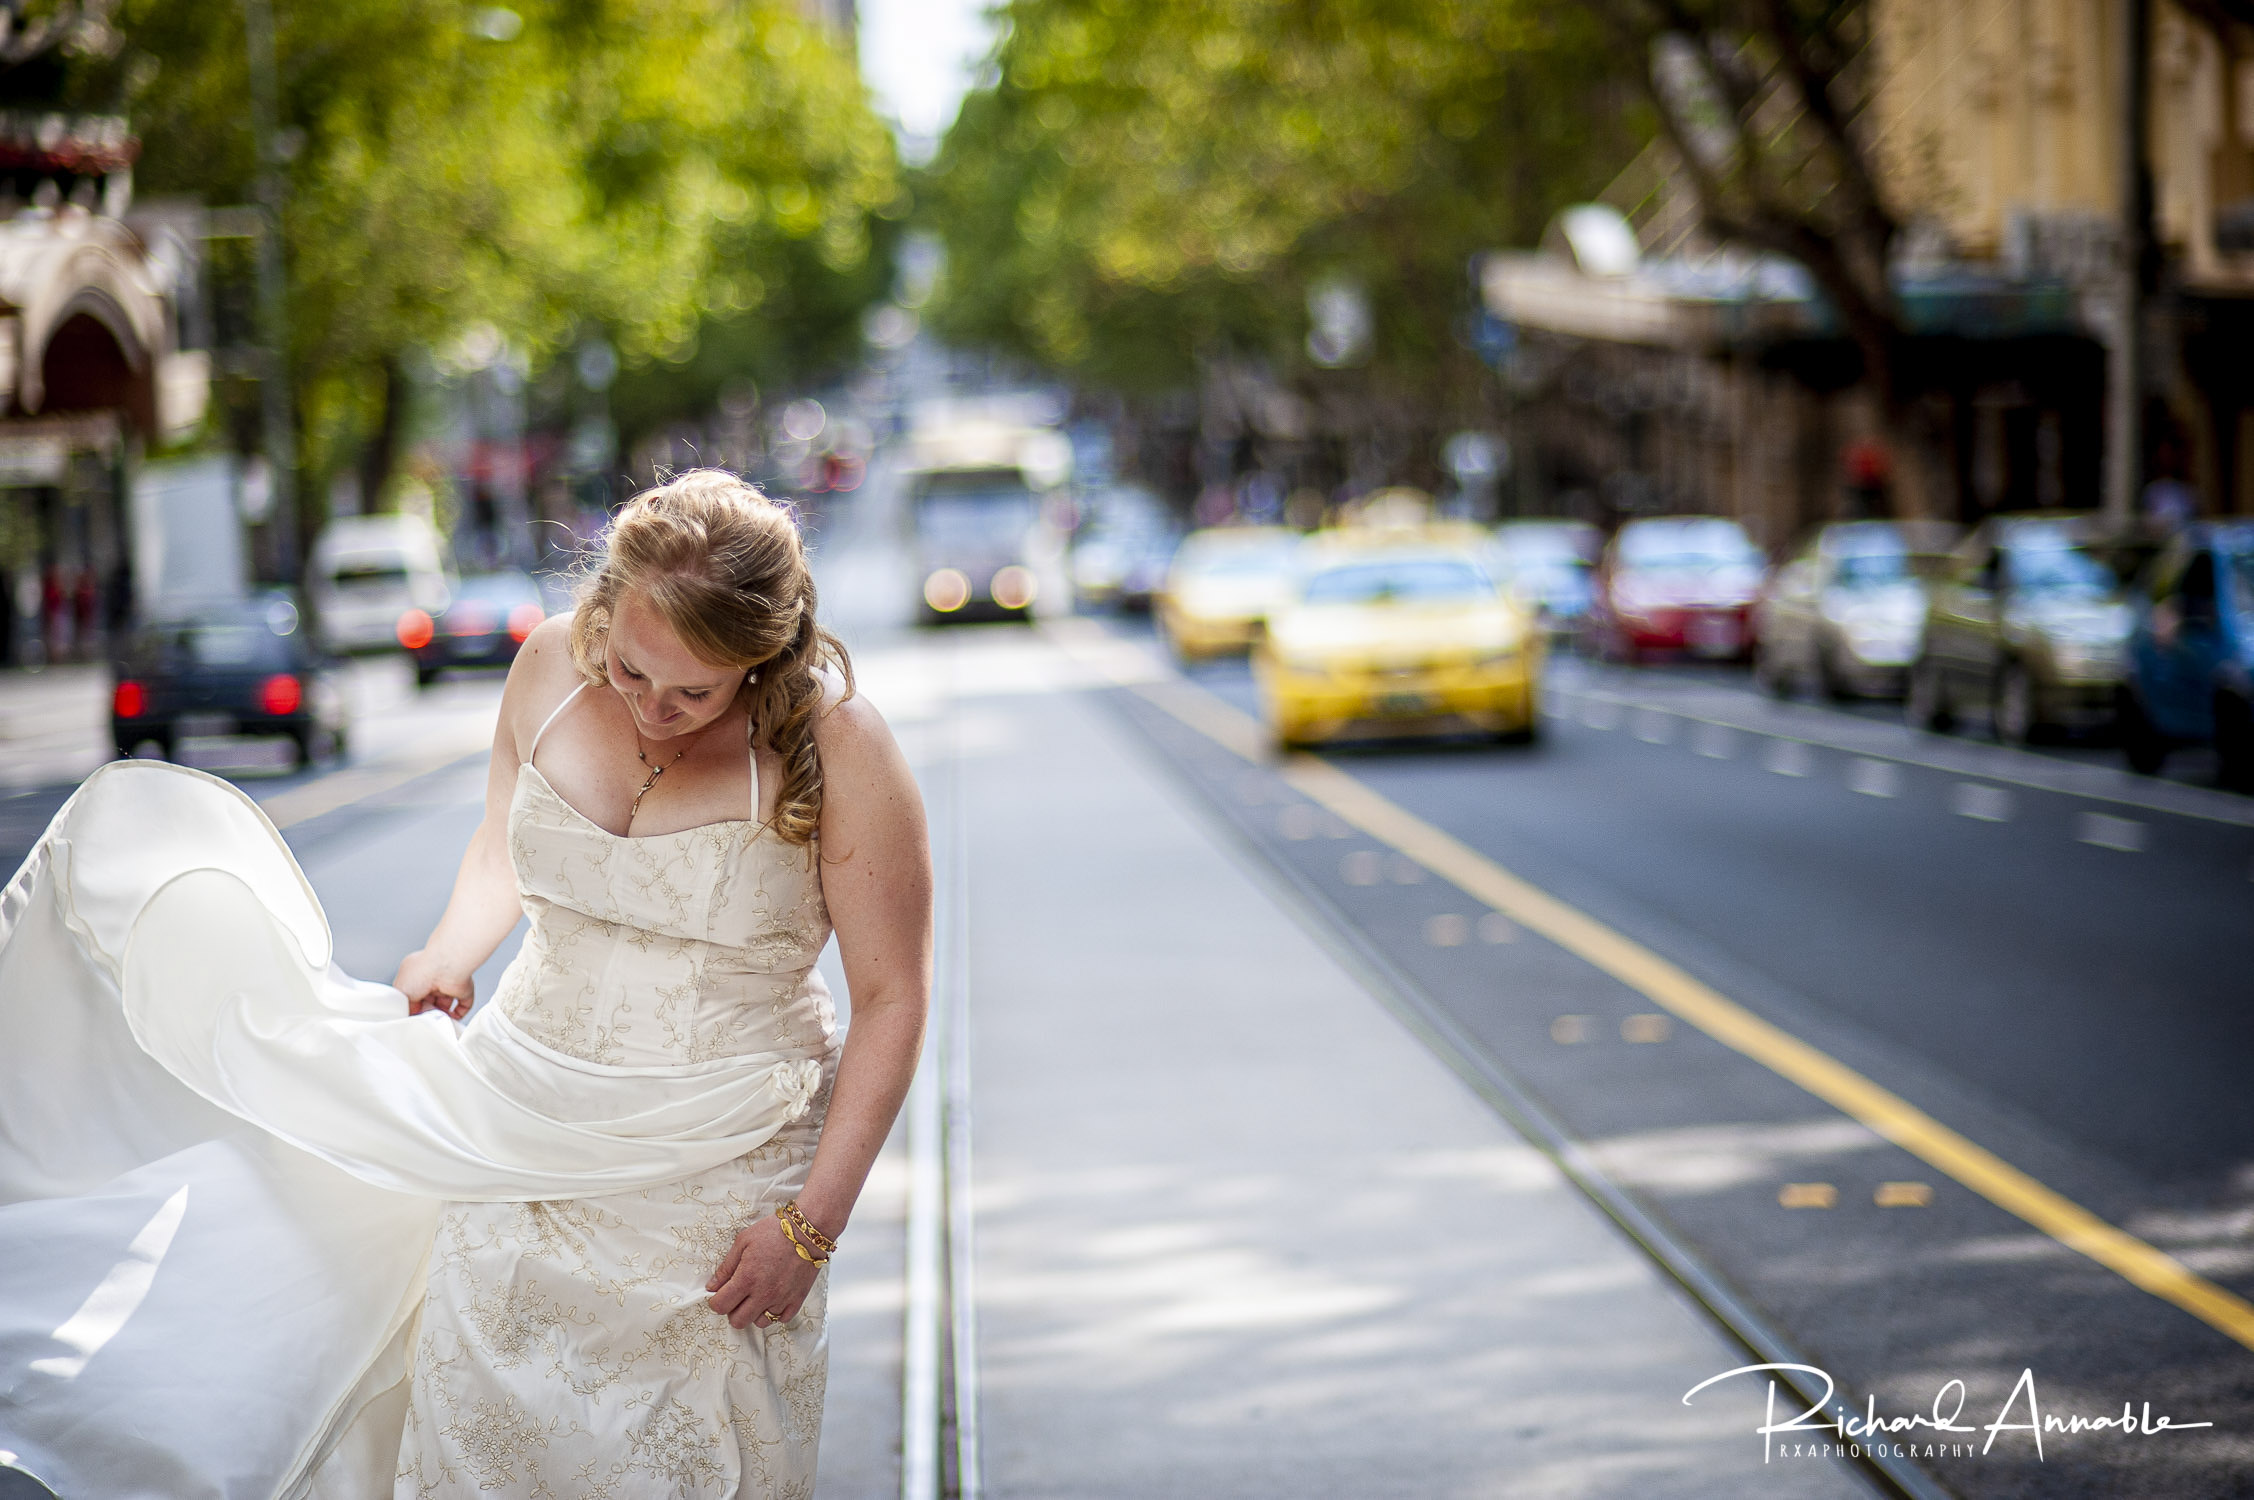 Breanna literally stopped traffic for this photograph on Collins Street in Melbourne.